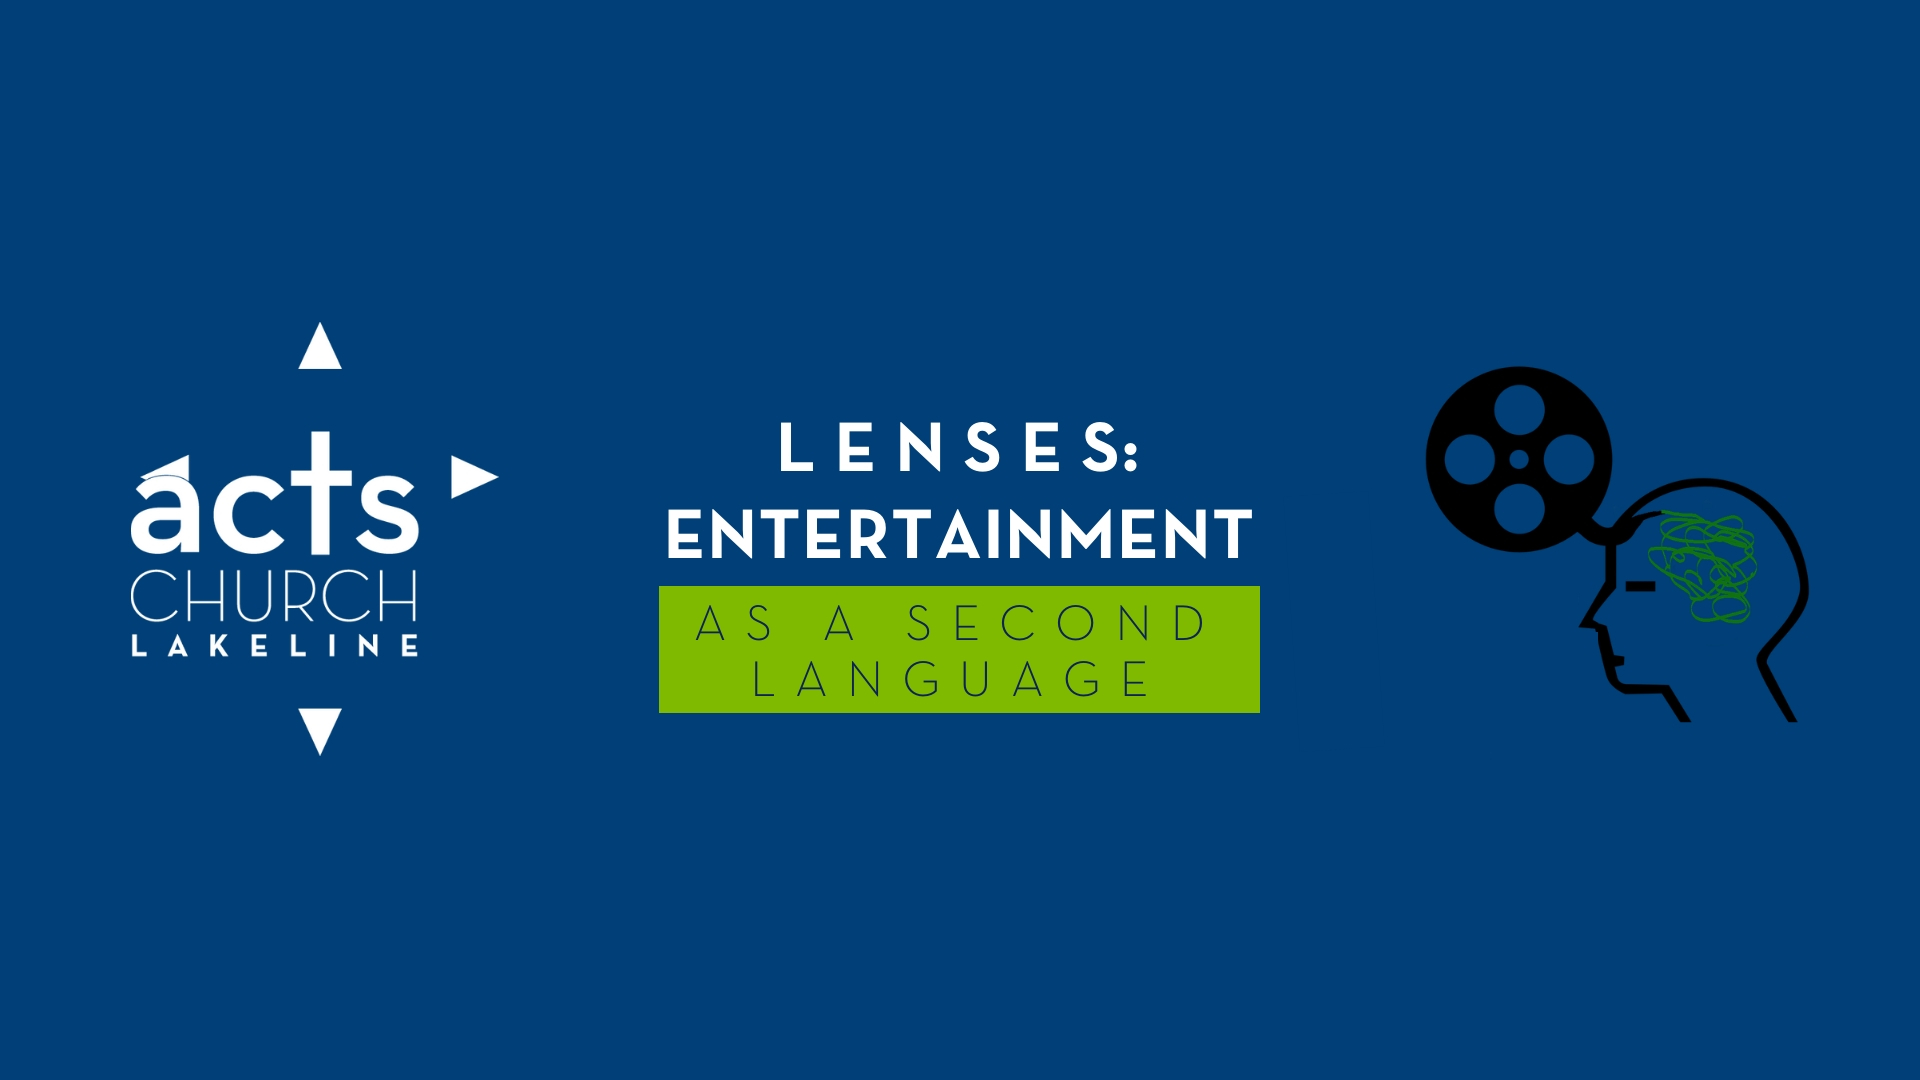 entertainment as a second language e-mail header size-7.jpg